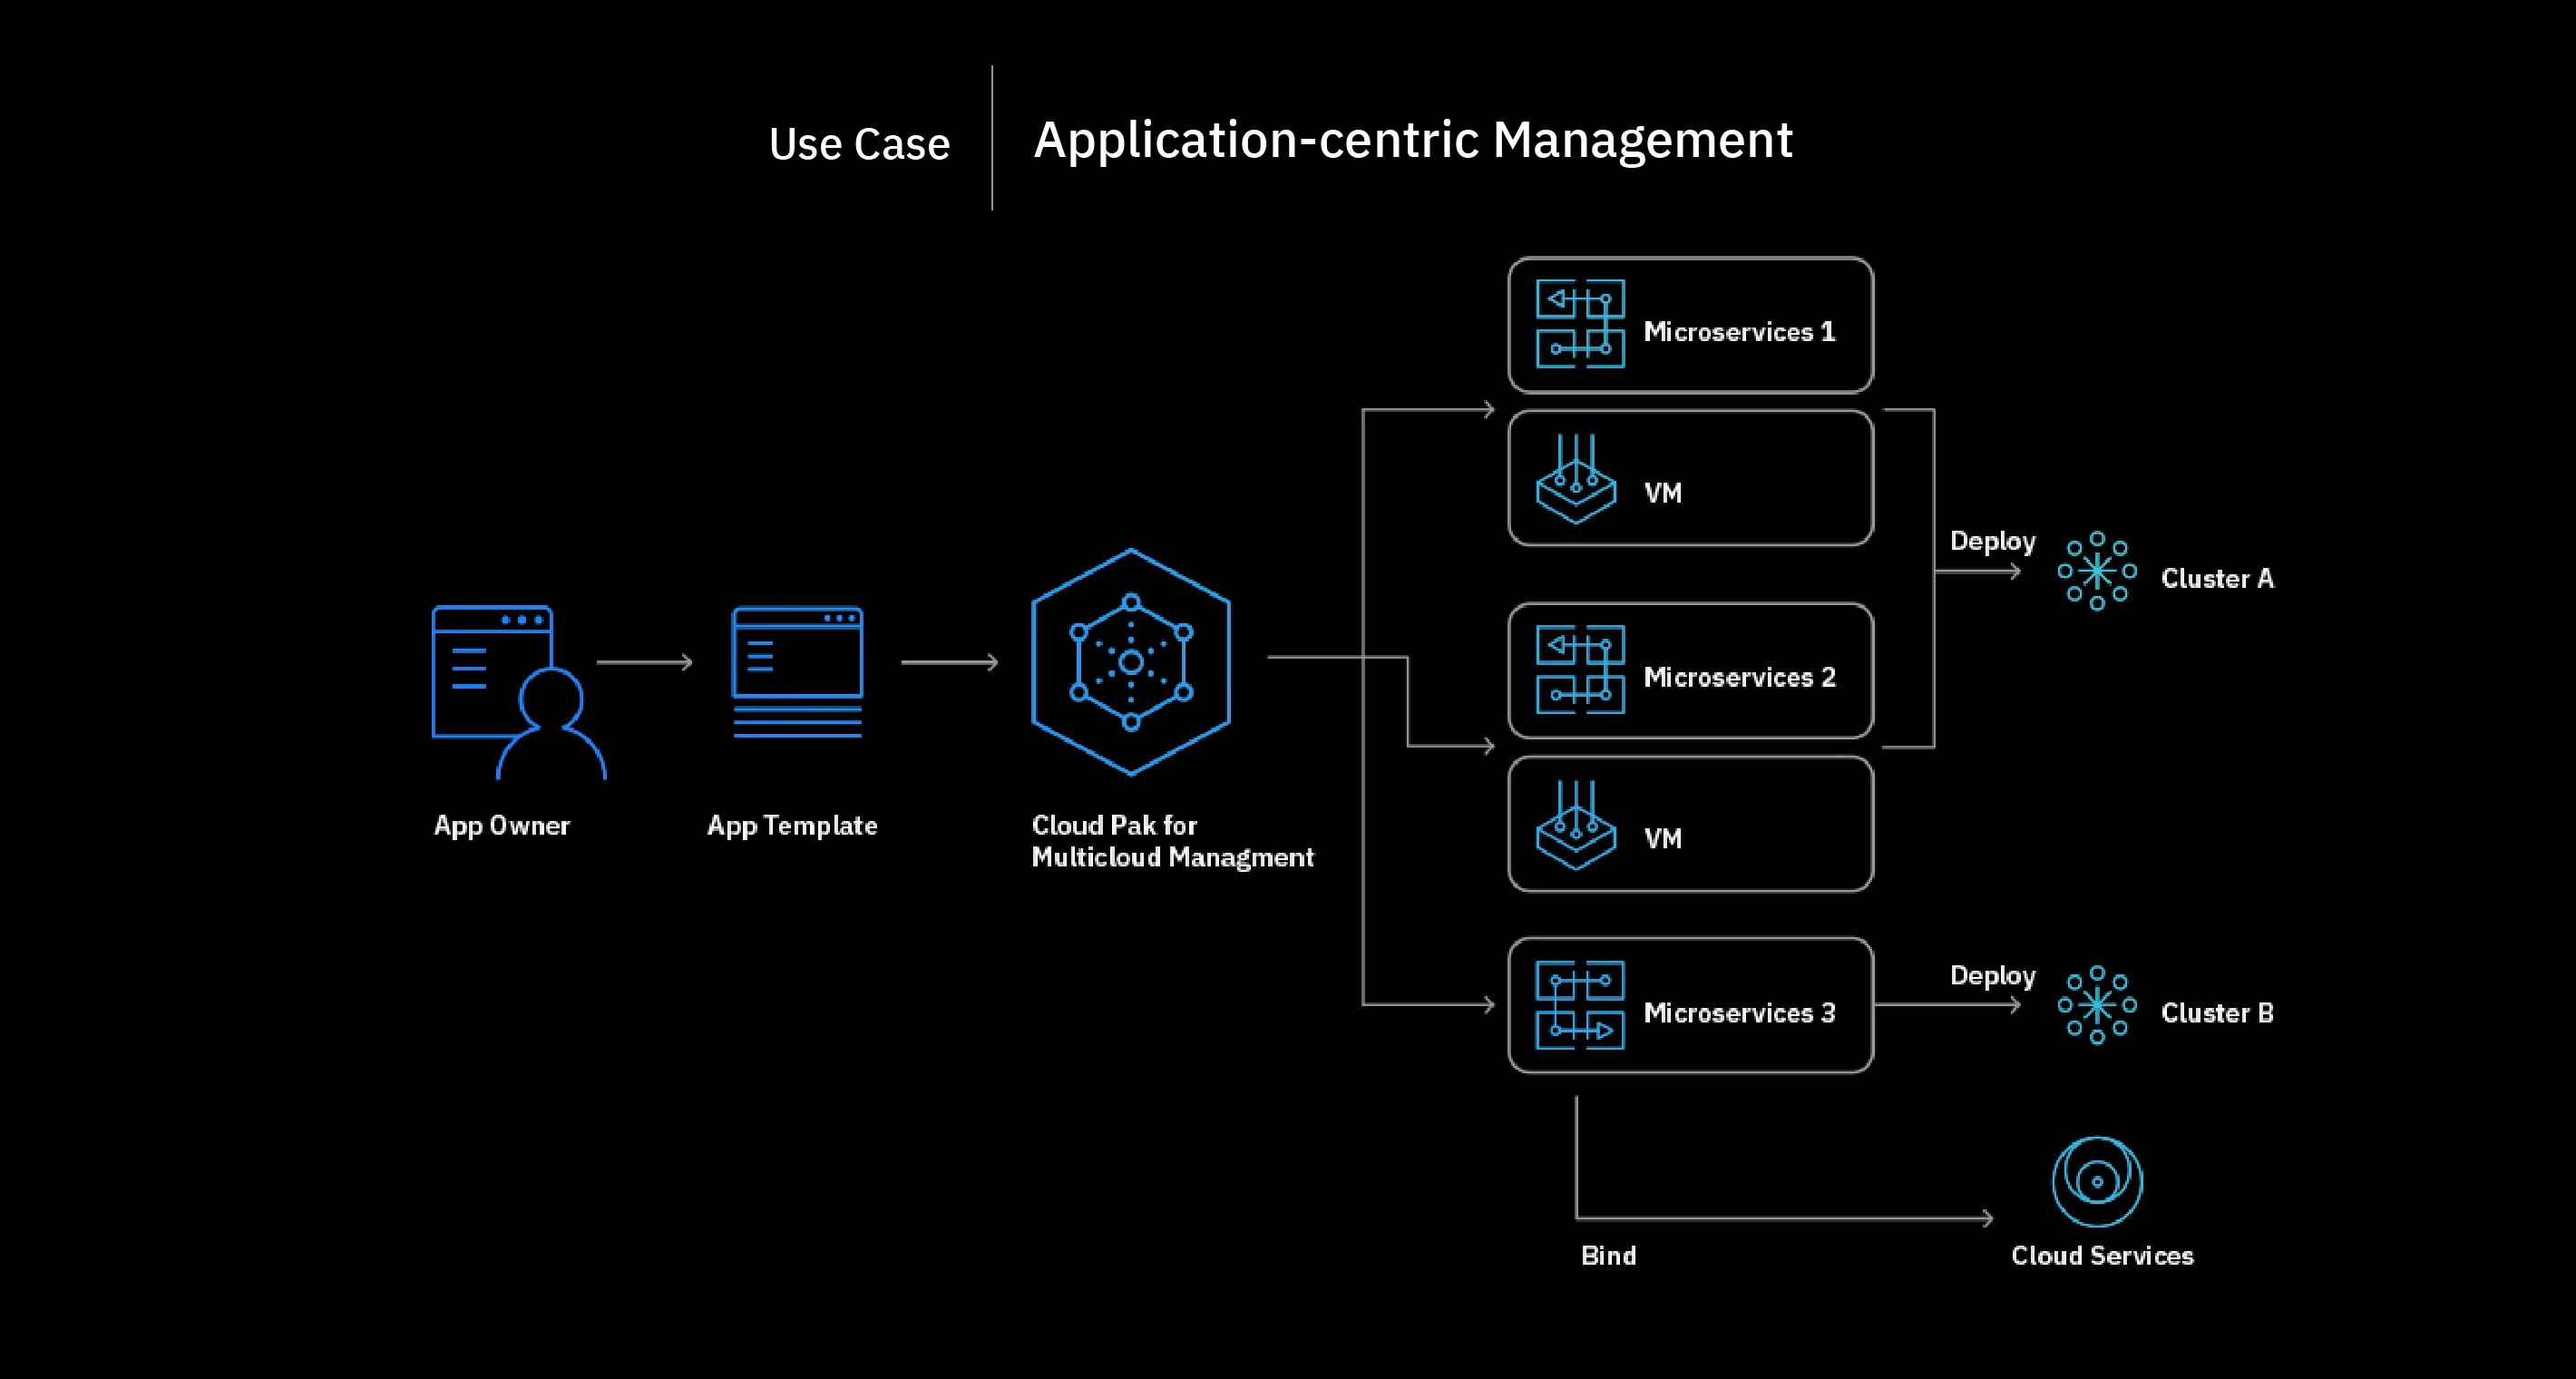 Flowchart showing the application-centric management process